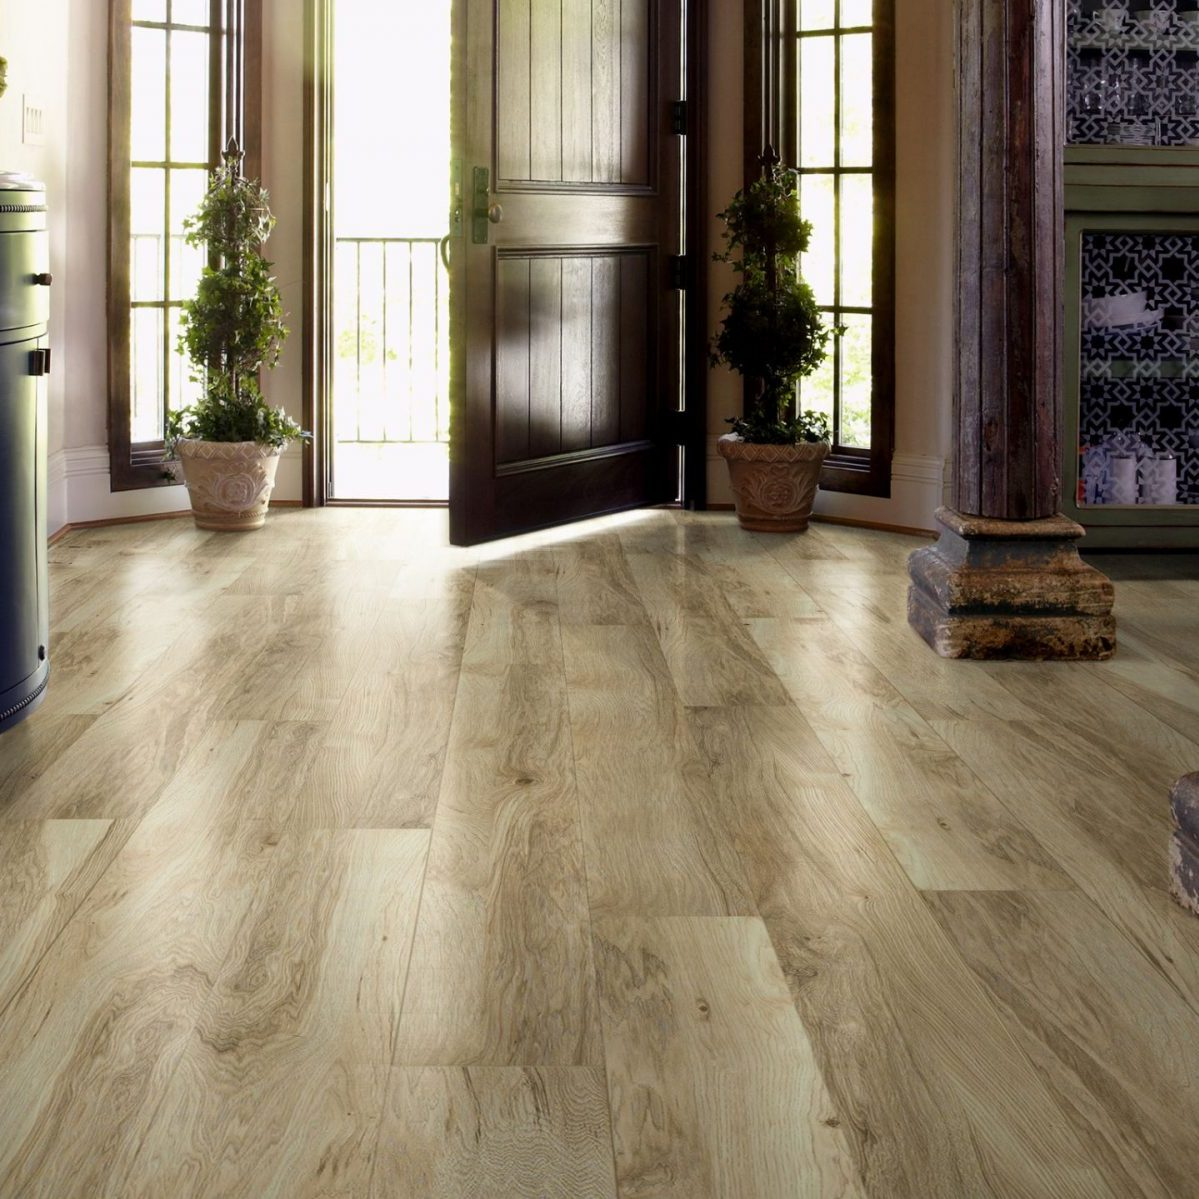 Laminate flooring | Hadinger Flooring